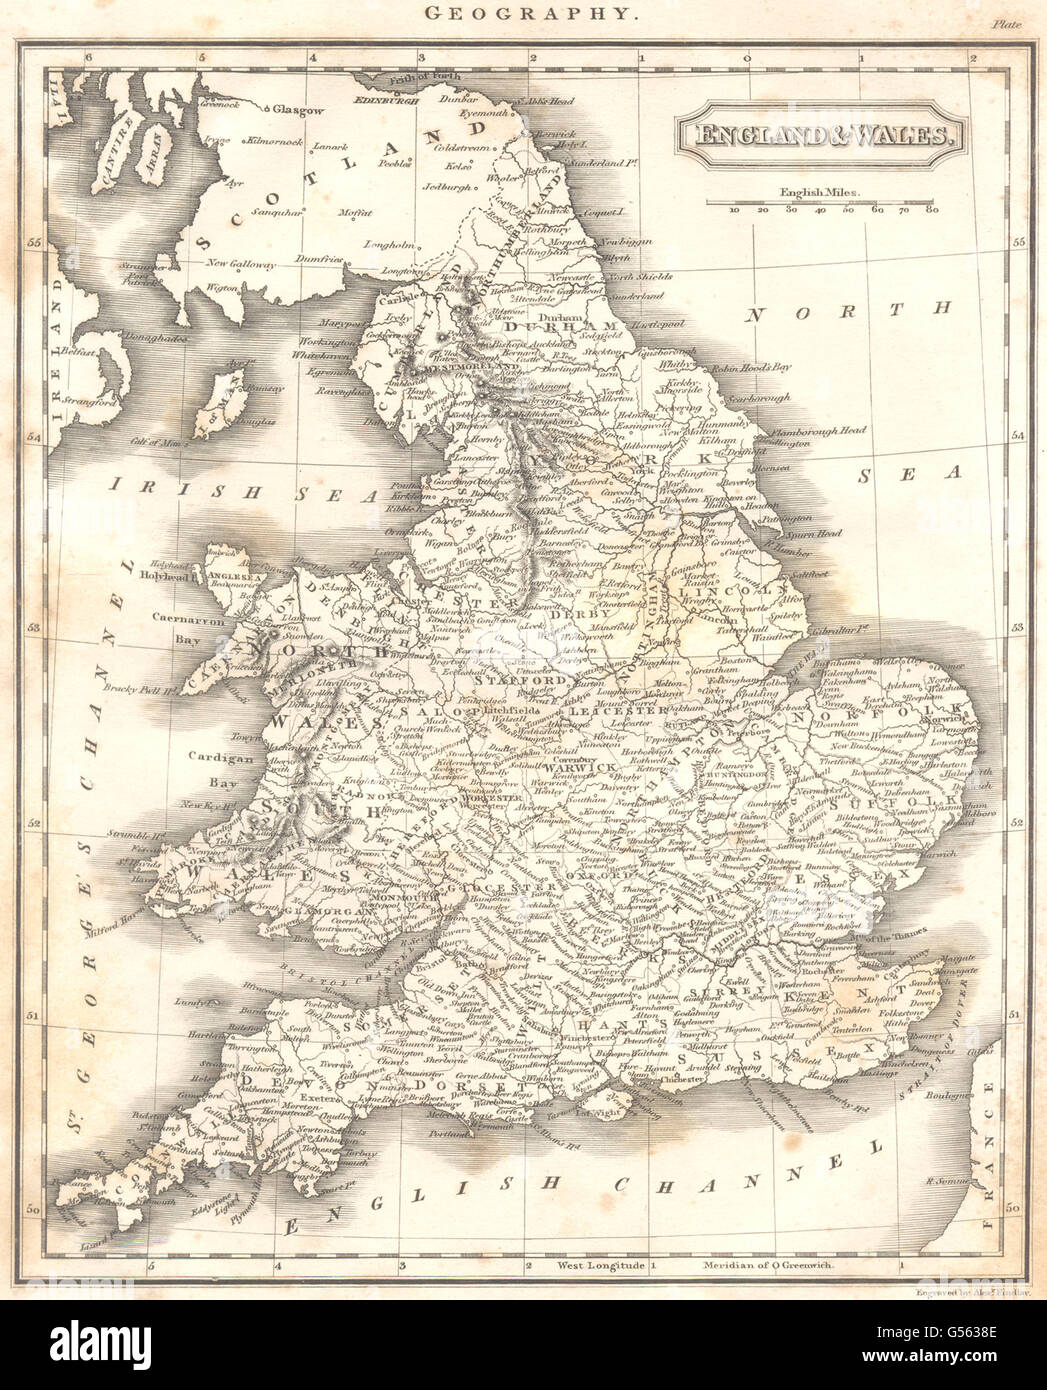 Map Of England Counties And Towns.United Kingdom England Wales Showing Mains Towns Counties 1830